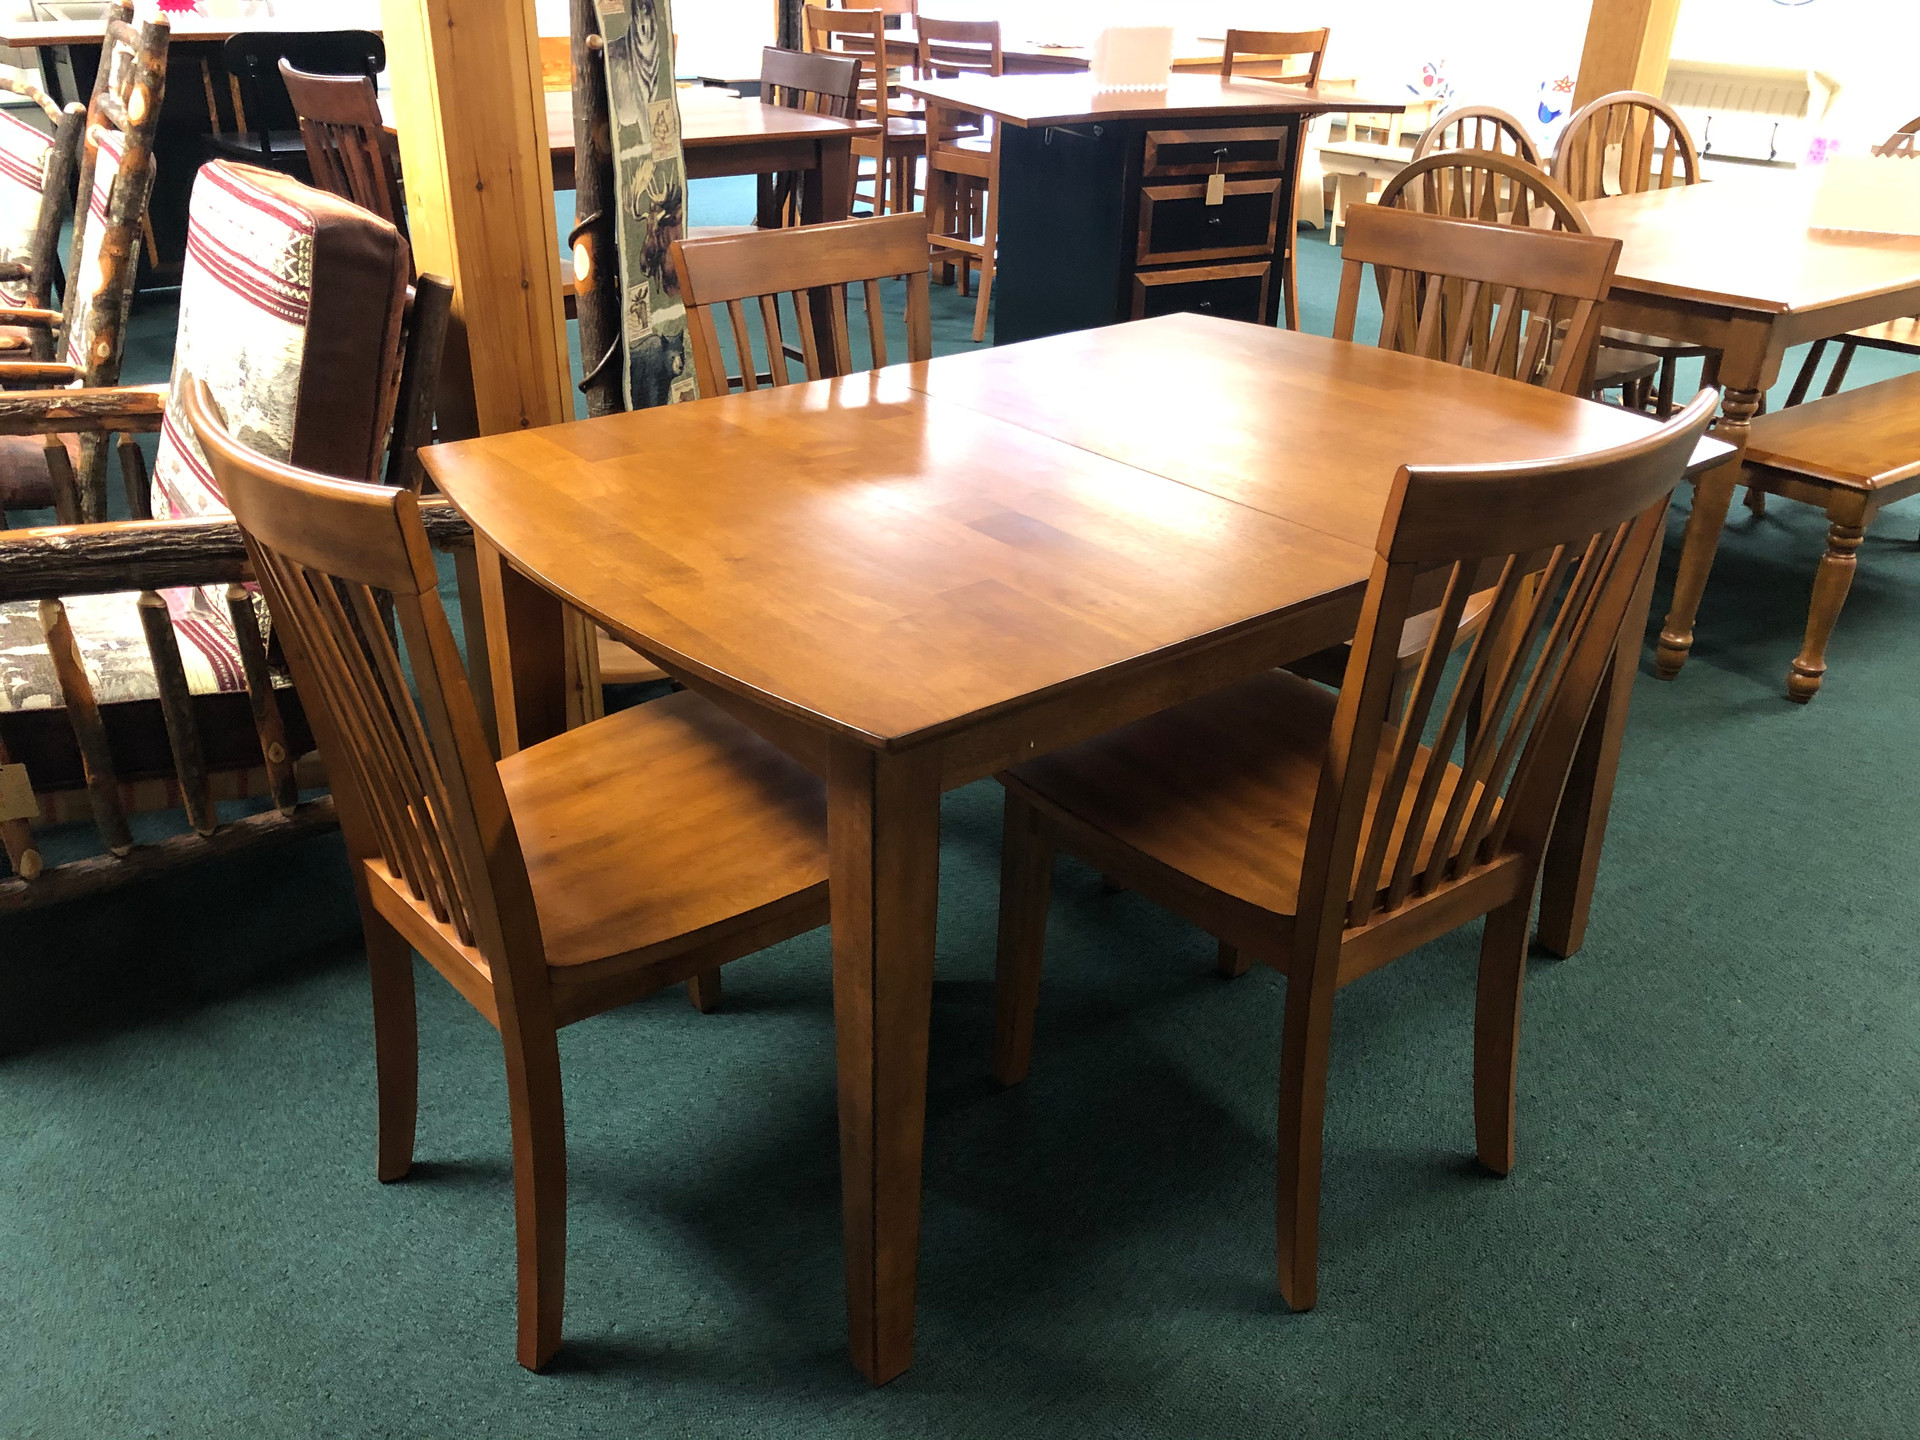 Solid Hardwood Butterfly Leaf Table w/ 6 Chairs